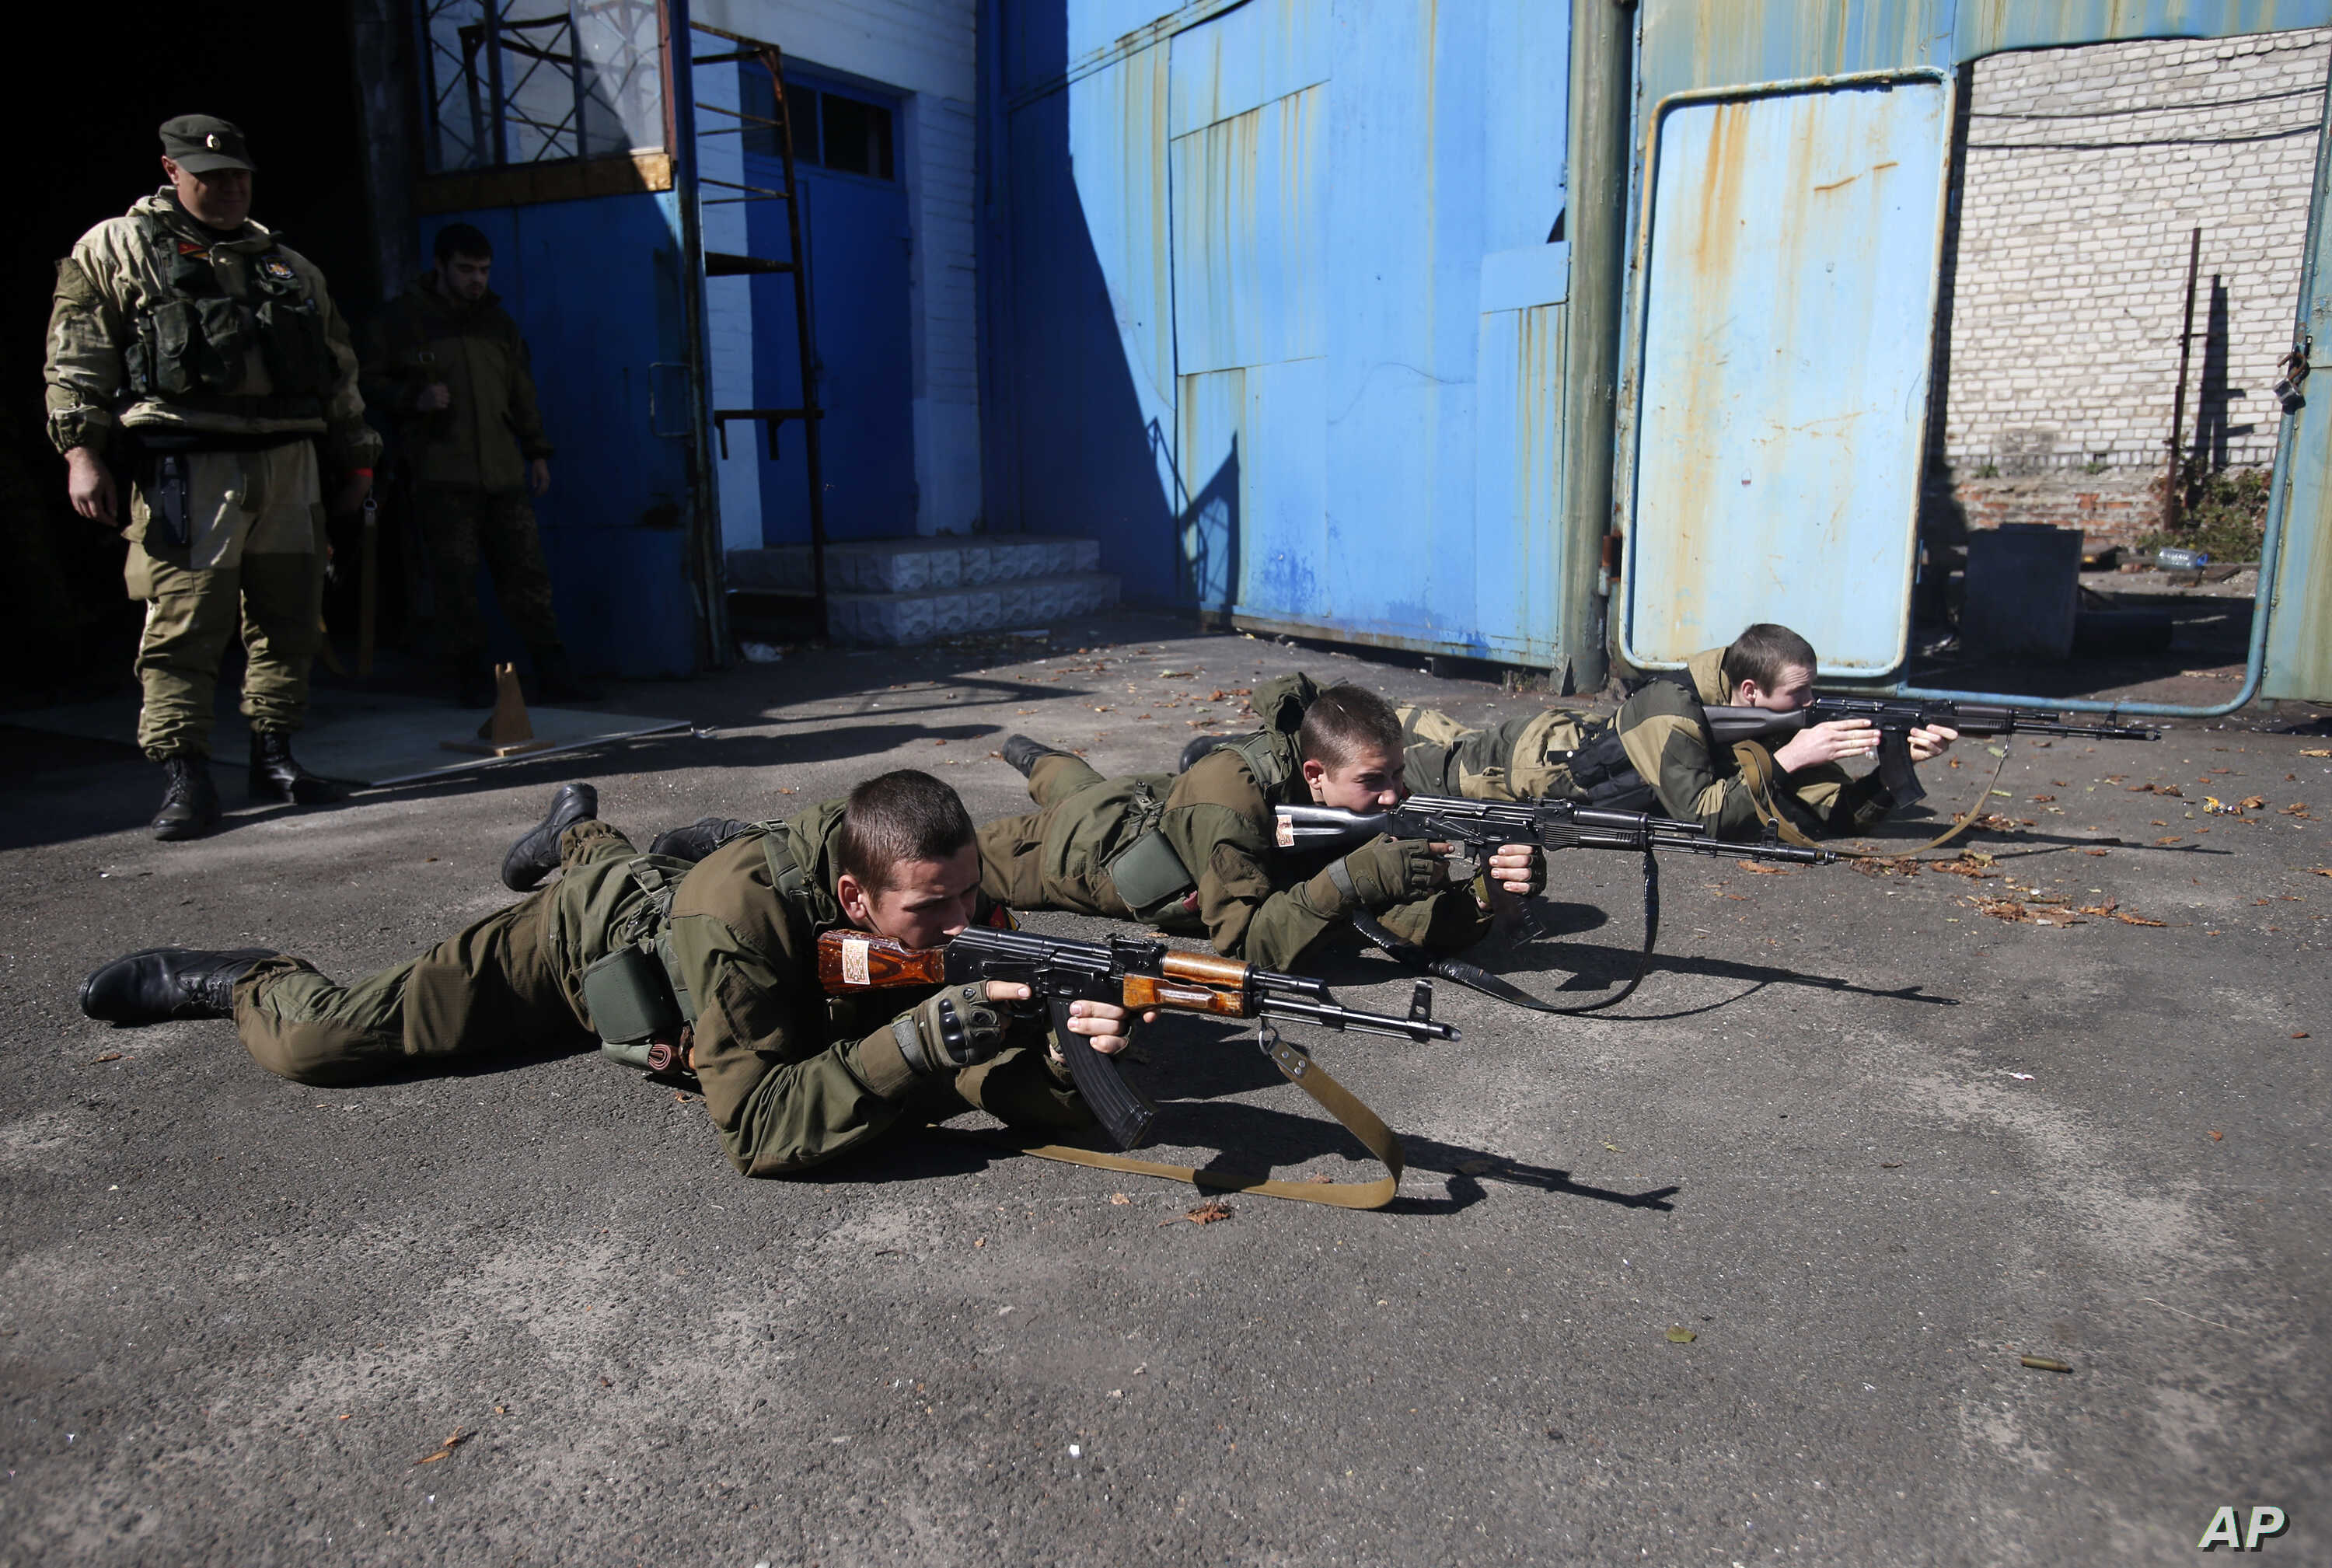 Young Pro-Russian rebels training in the town of Donetsk, eastern Ukraine, Sept. 29, 2014.